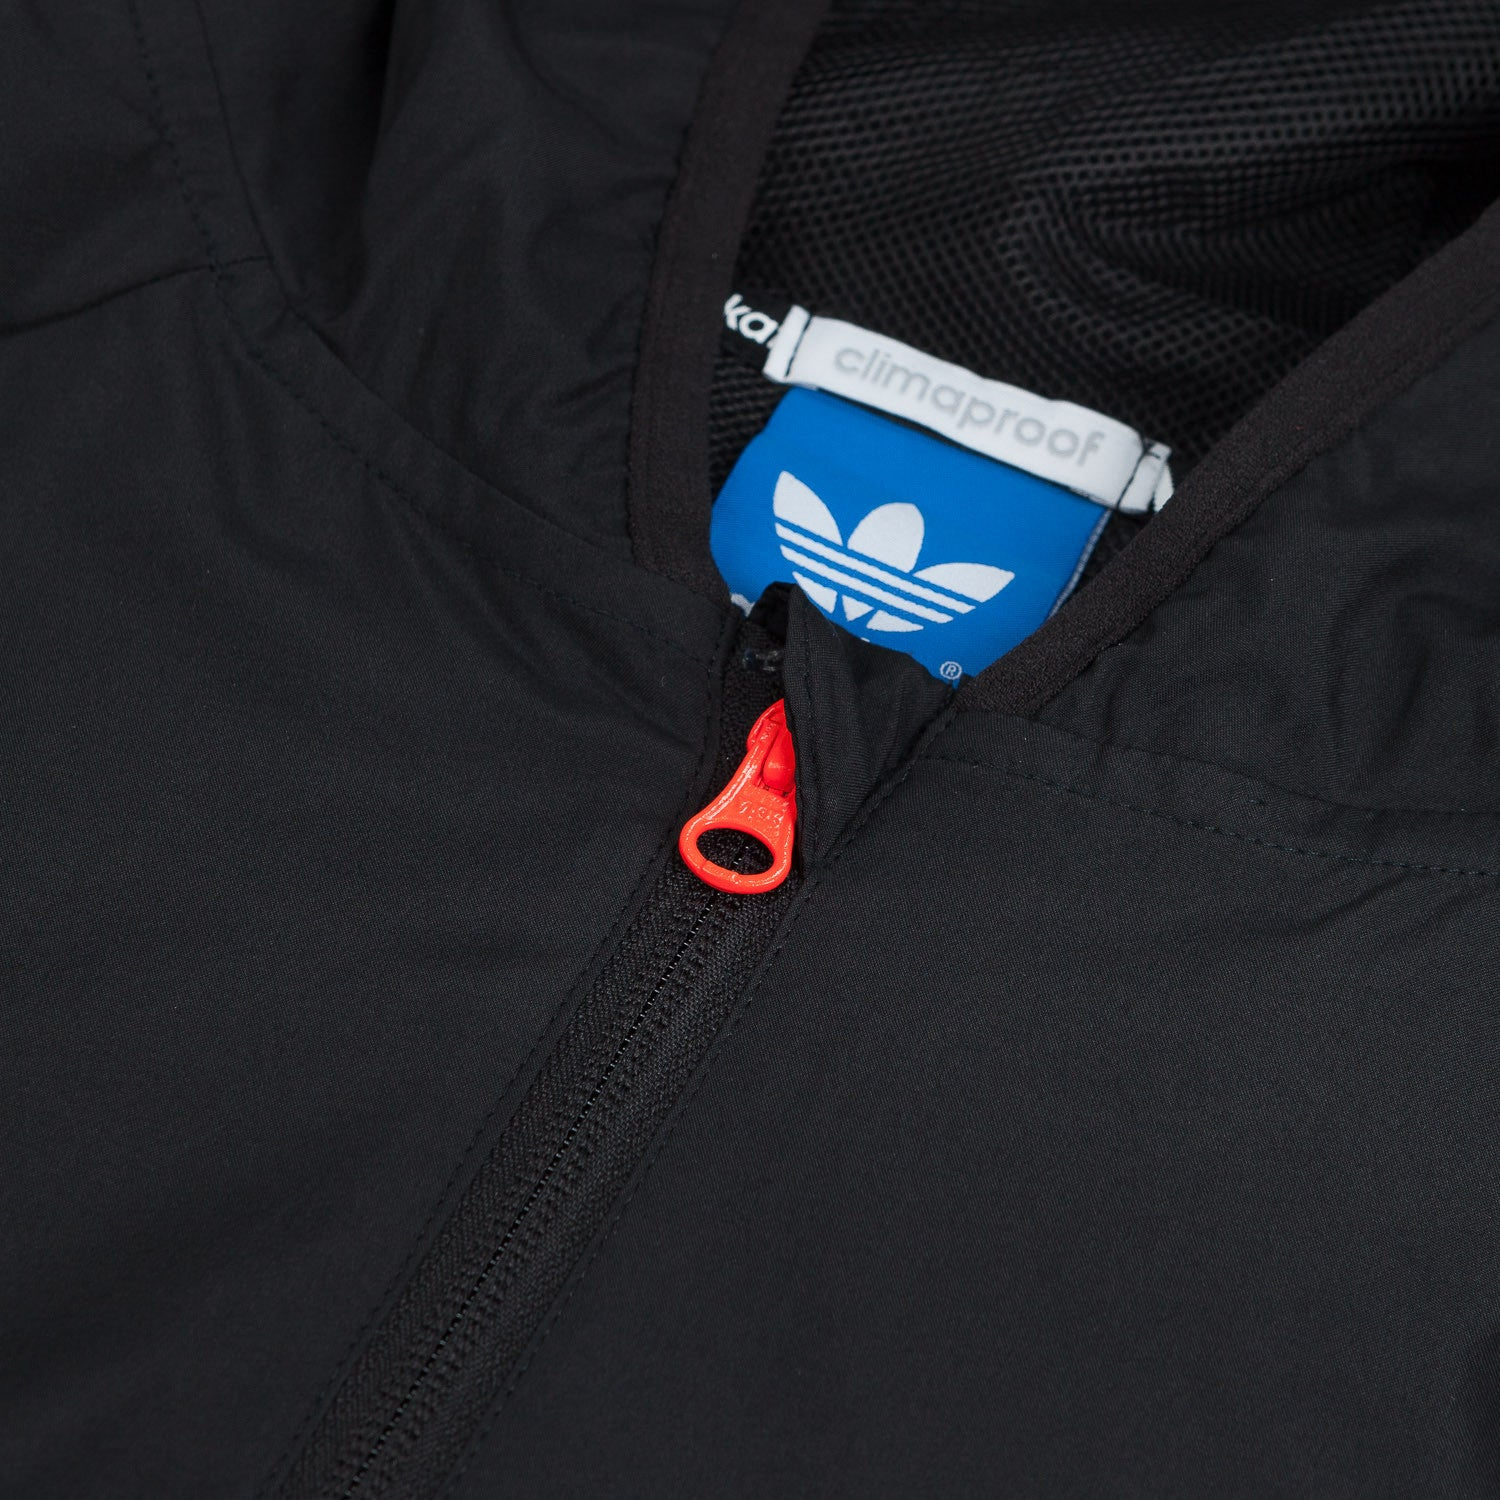 Adidas Adv SLR Red Wind Jacket - Black